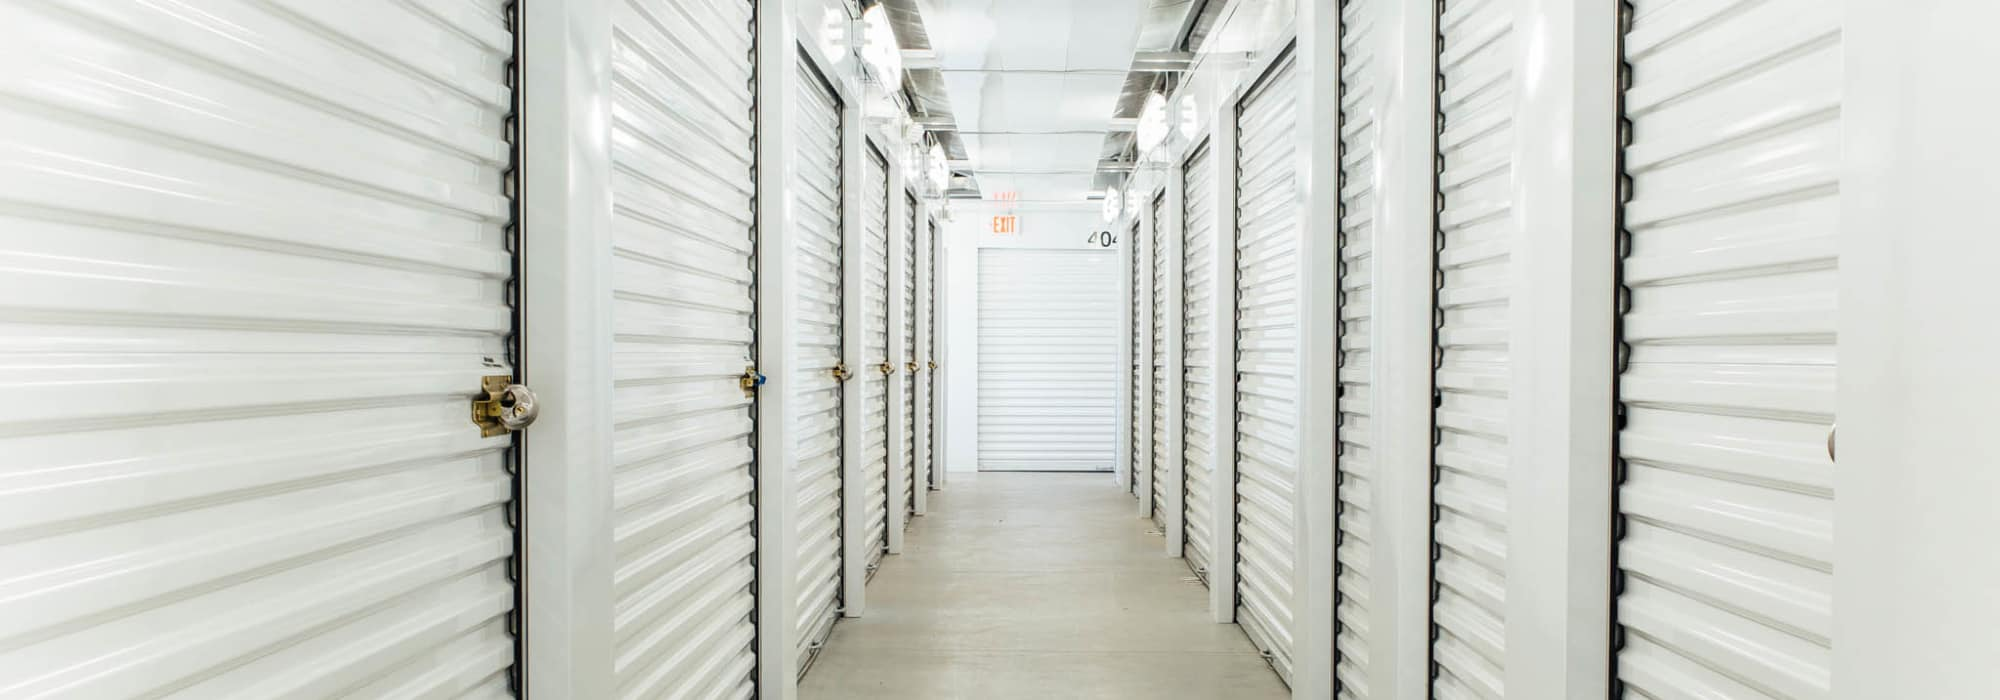 Self storage units in Concord North Carolina